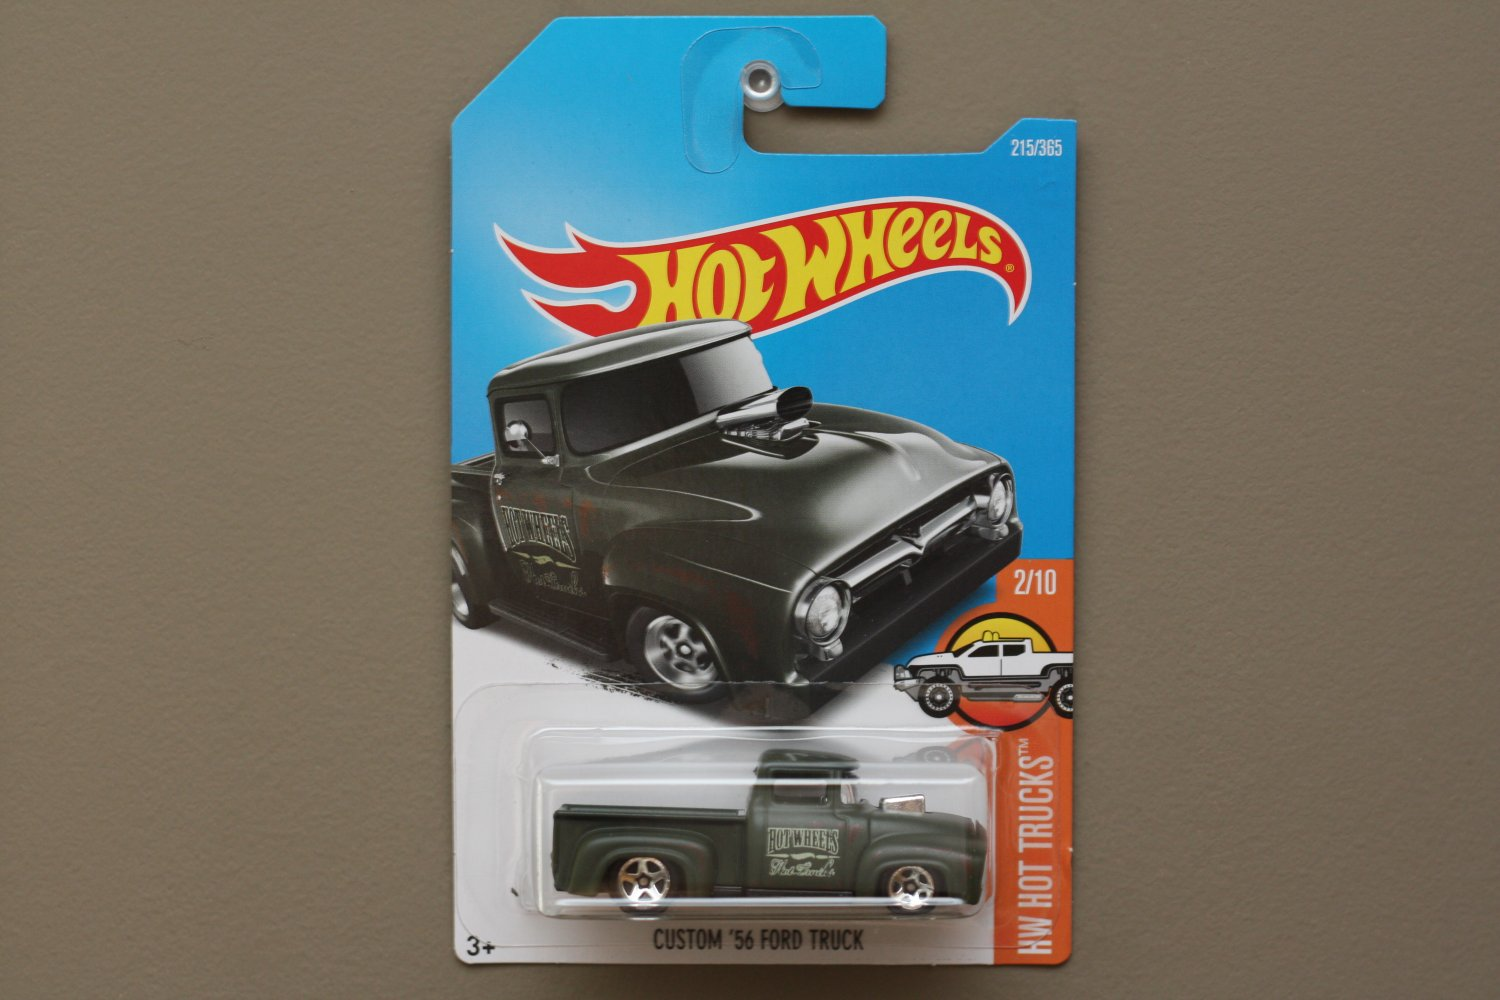 Hot Wheels 2017 HW Hot Trucks Custom '56 Ford Truck (military green)